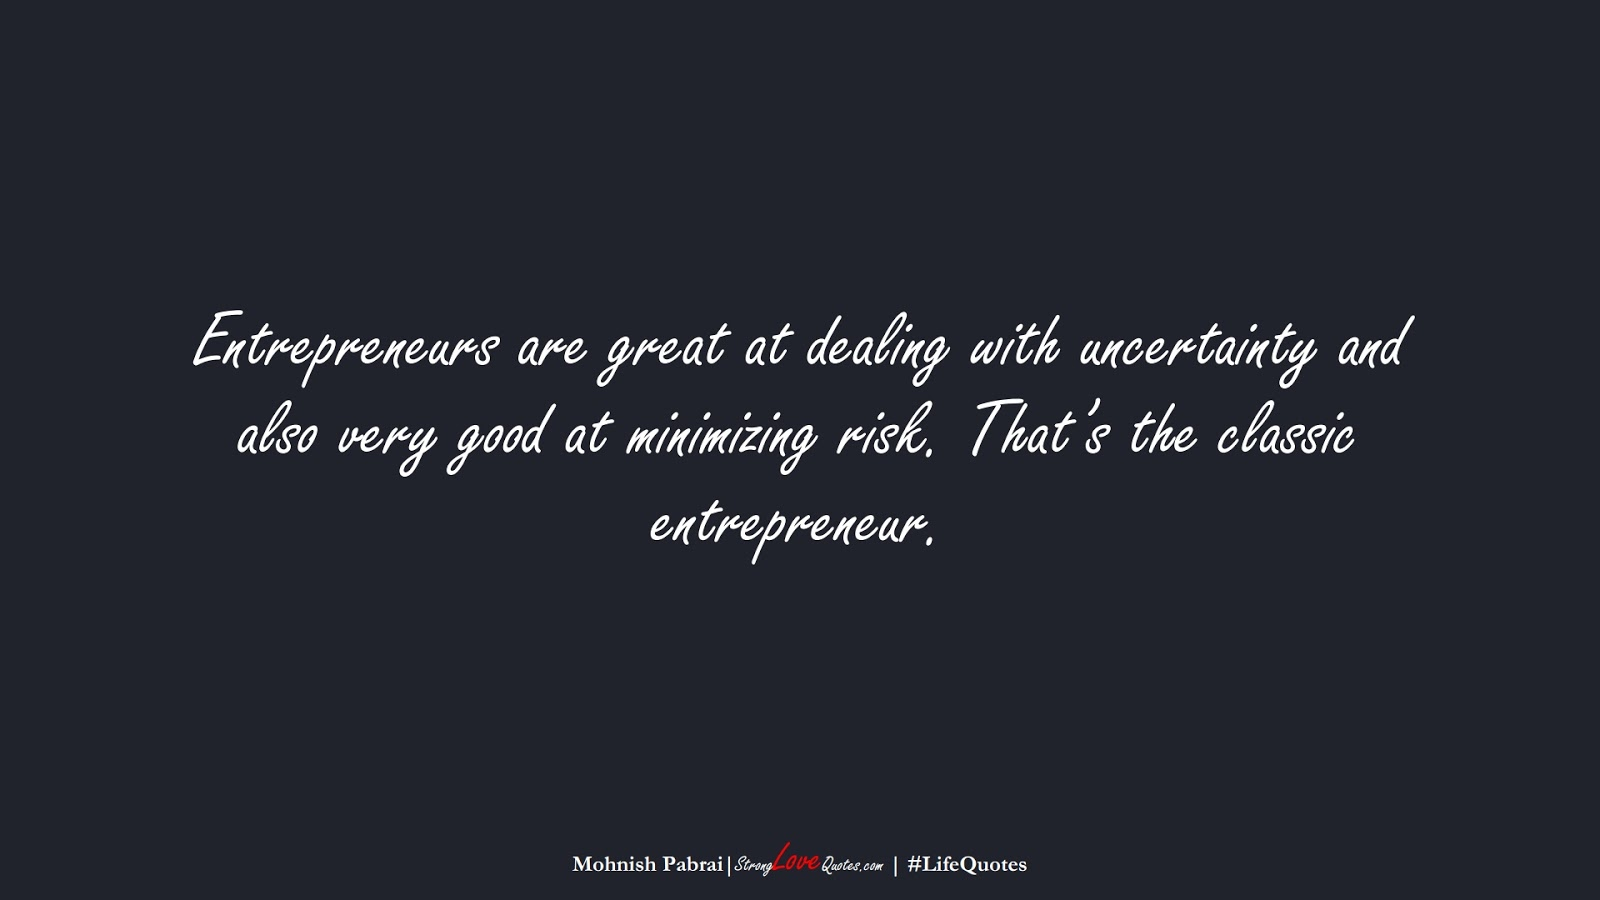 Entrepreneurs are great at dealing with uncertainty and also very good at minimizing risk. That's the classic entrepreneur. (Mohnish Pabrai);  #LifeQuotes